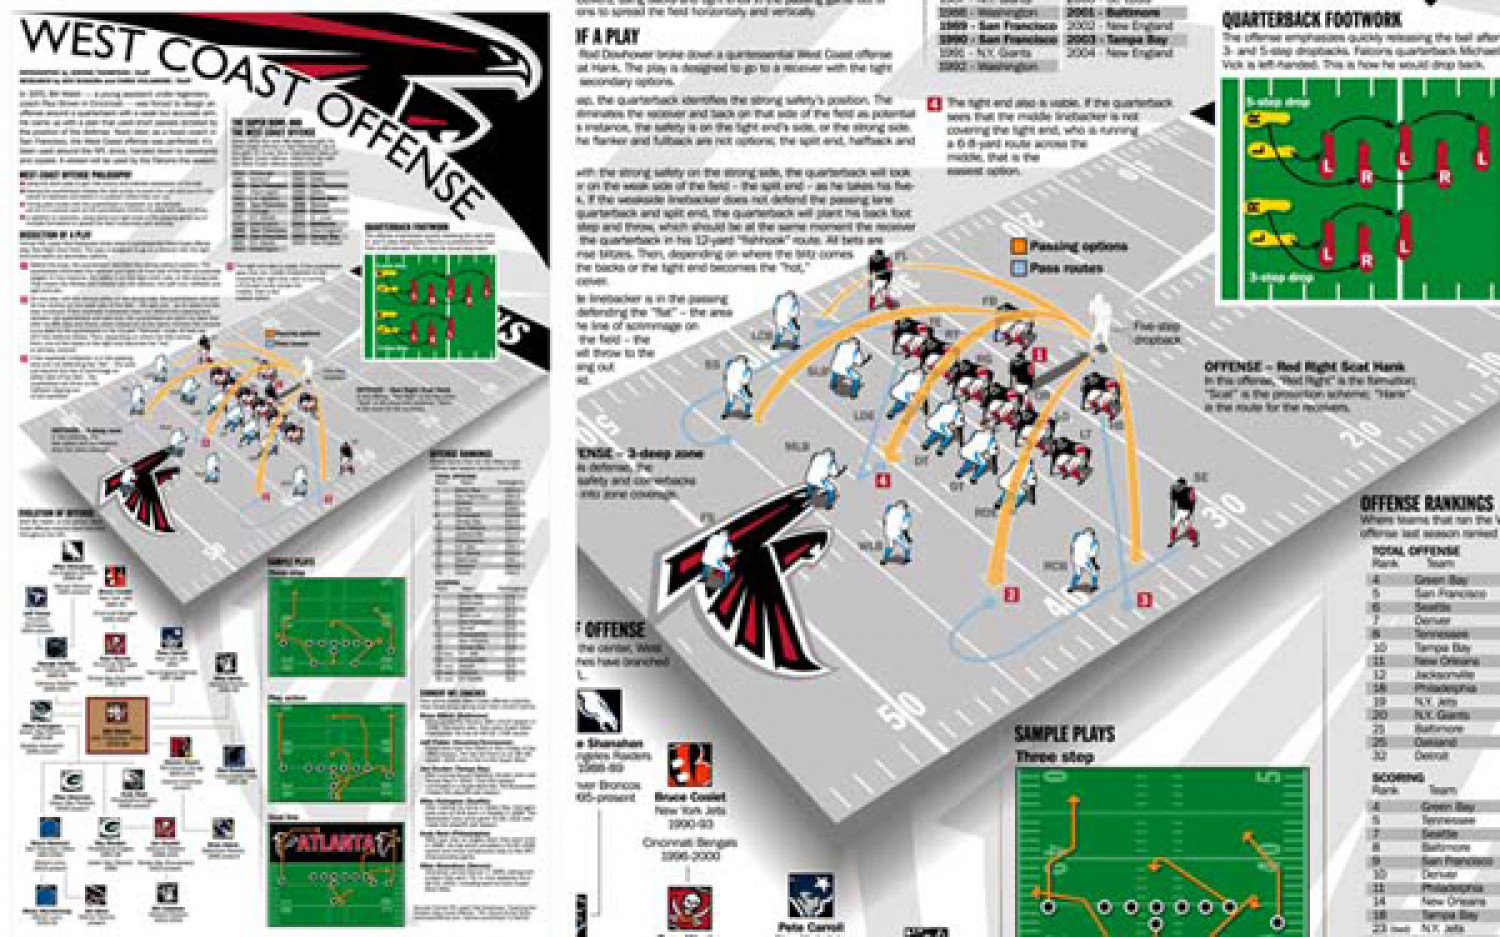 Atlanta Falcons West Coast Offense Infographic